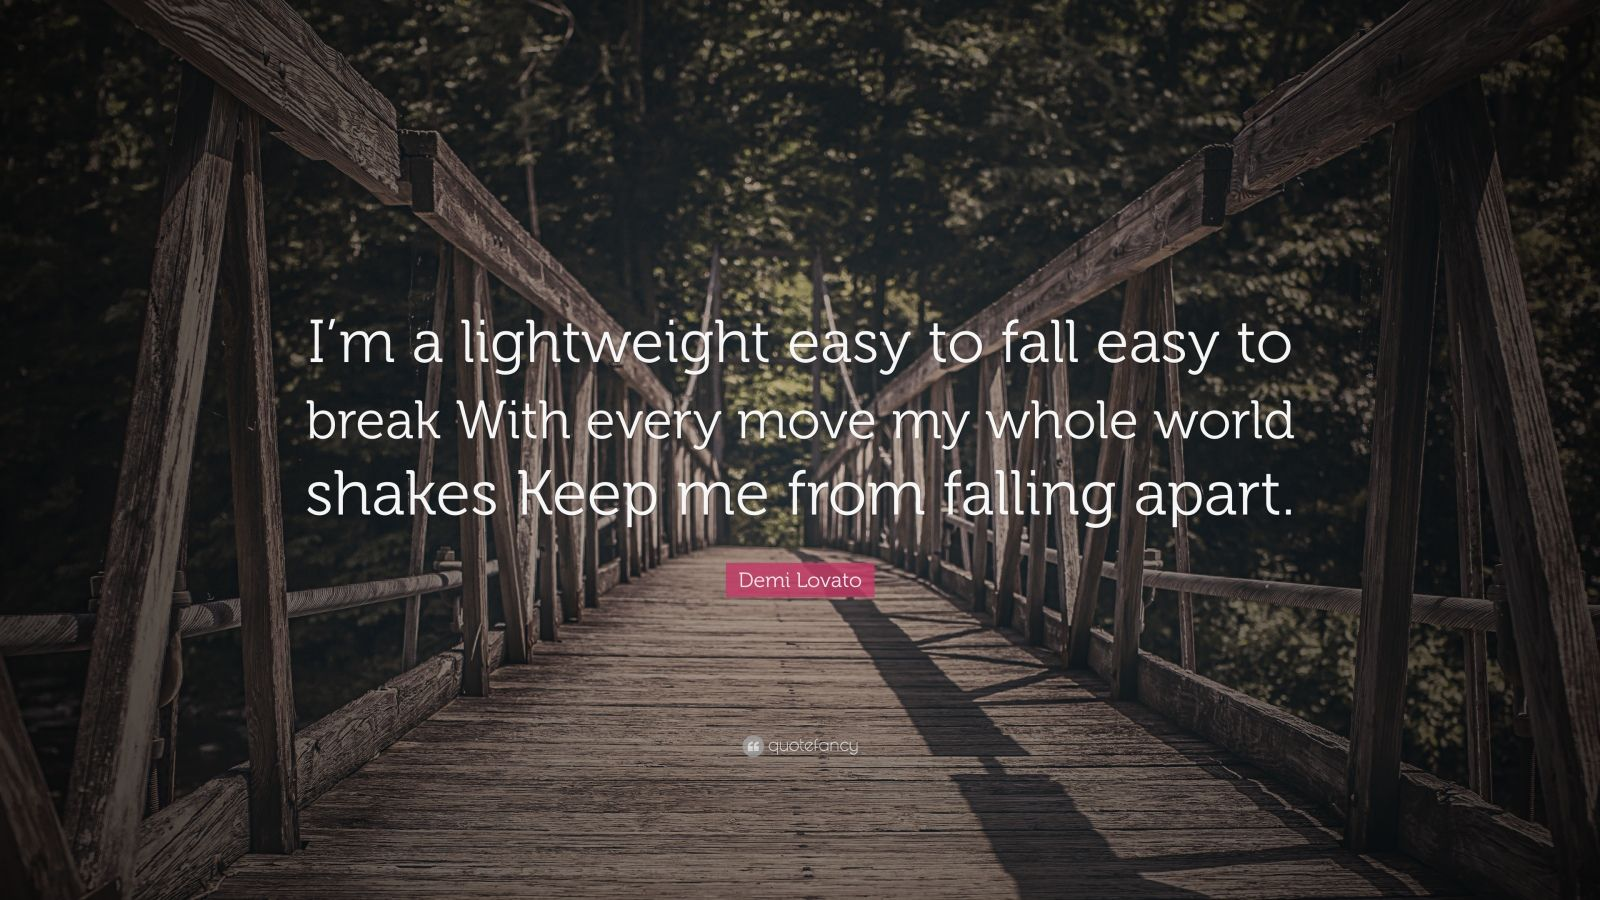 """Demi Lovato Quote: """"I'm a lightweight easy to fall easy to break With every move my whole world shakes Keep me from falling apart."""""""